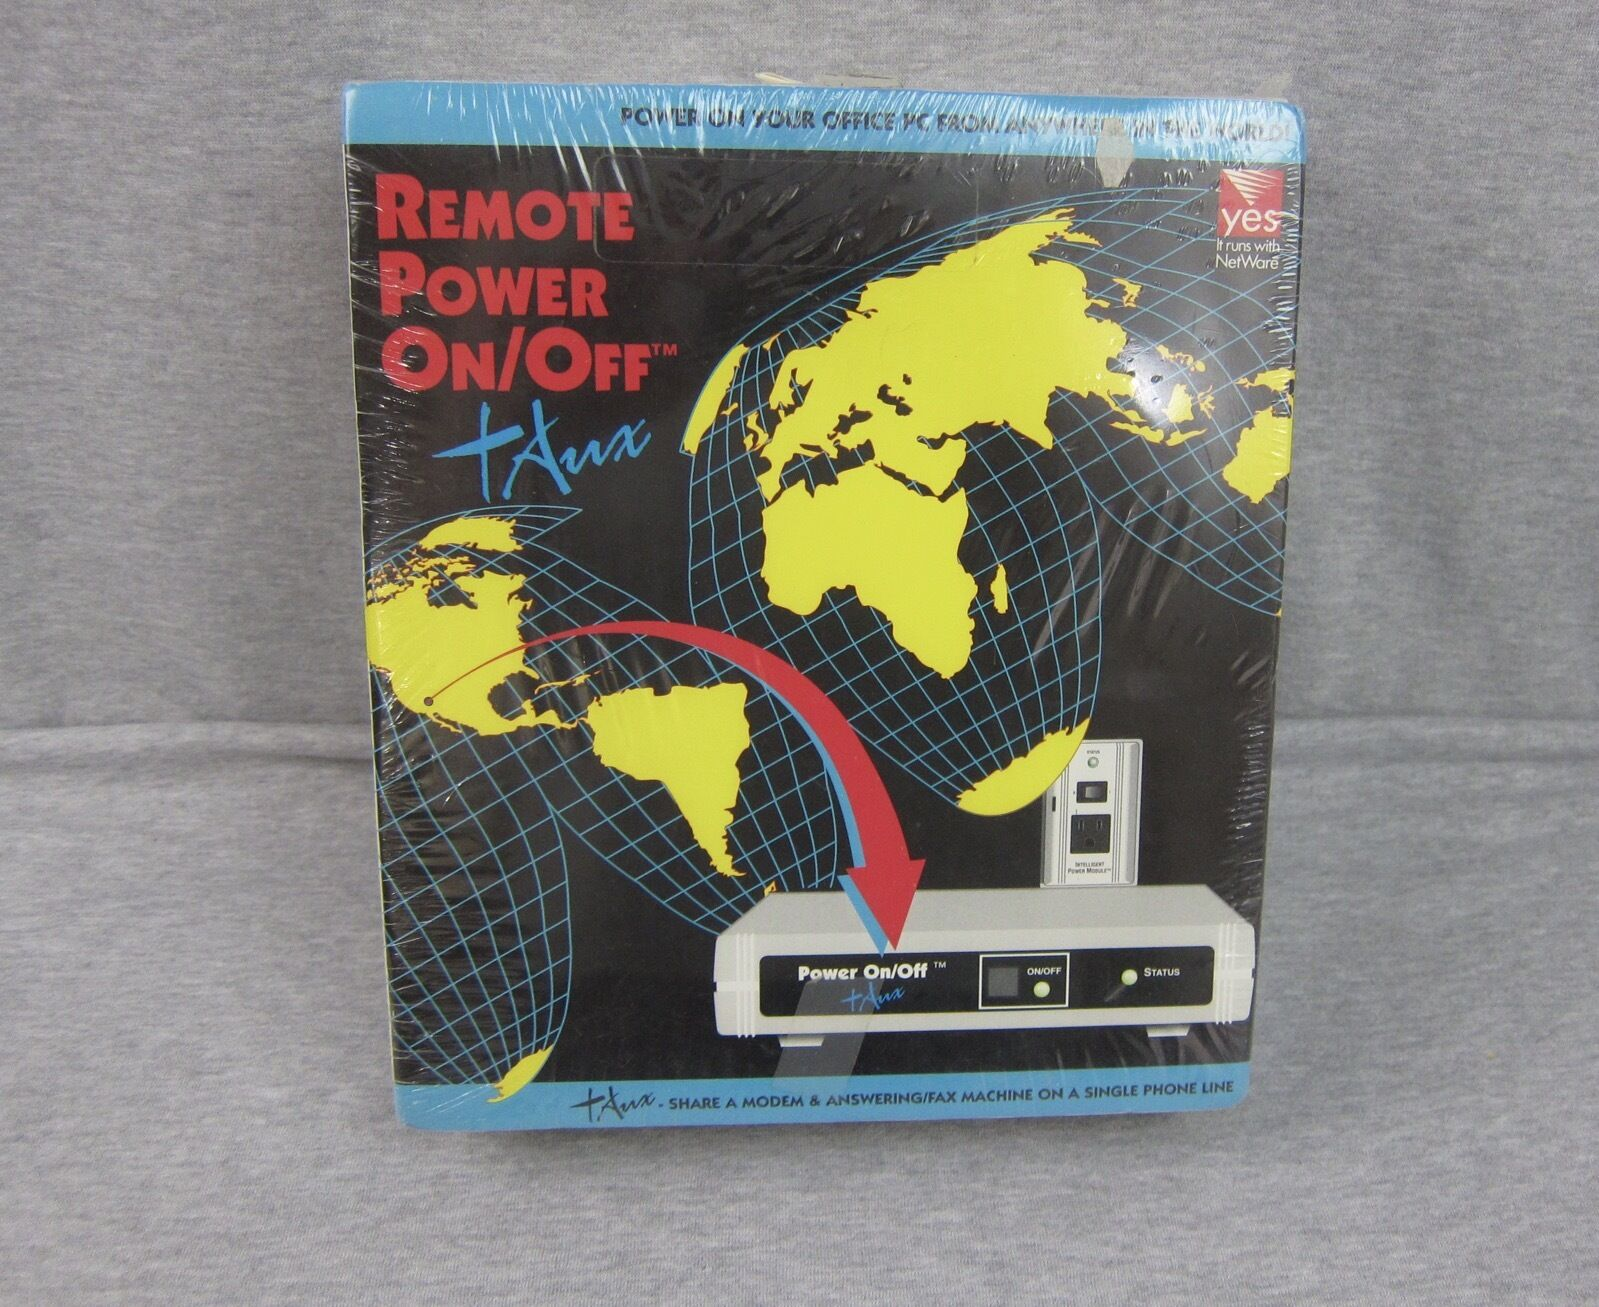 NEW Server Technology Remote Power On/Off T Aux Share a modem Device SEALED 1